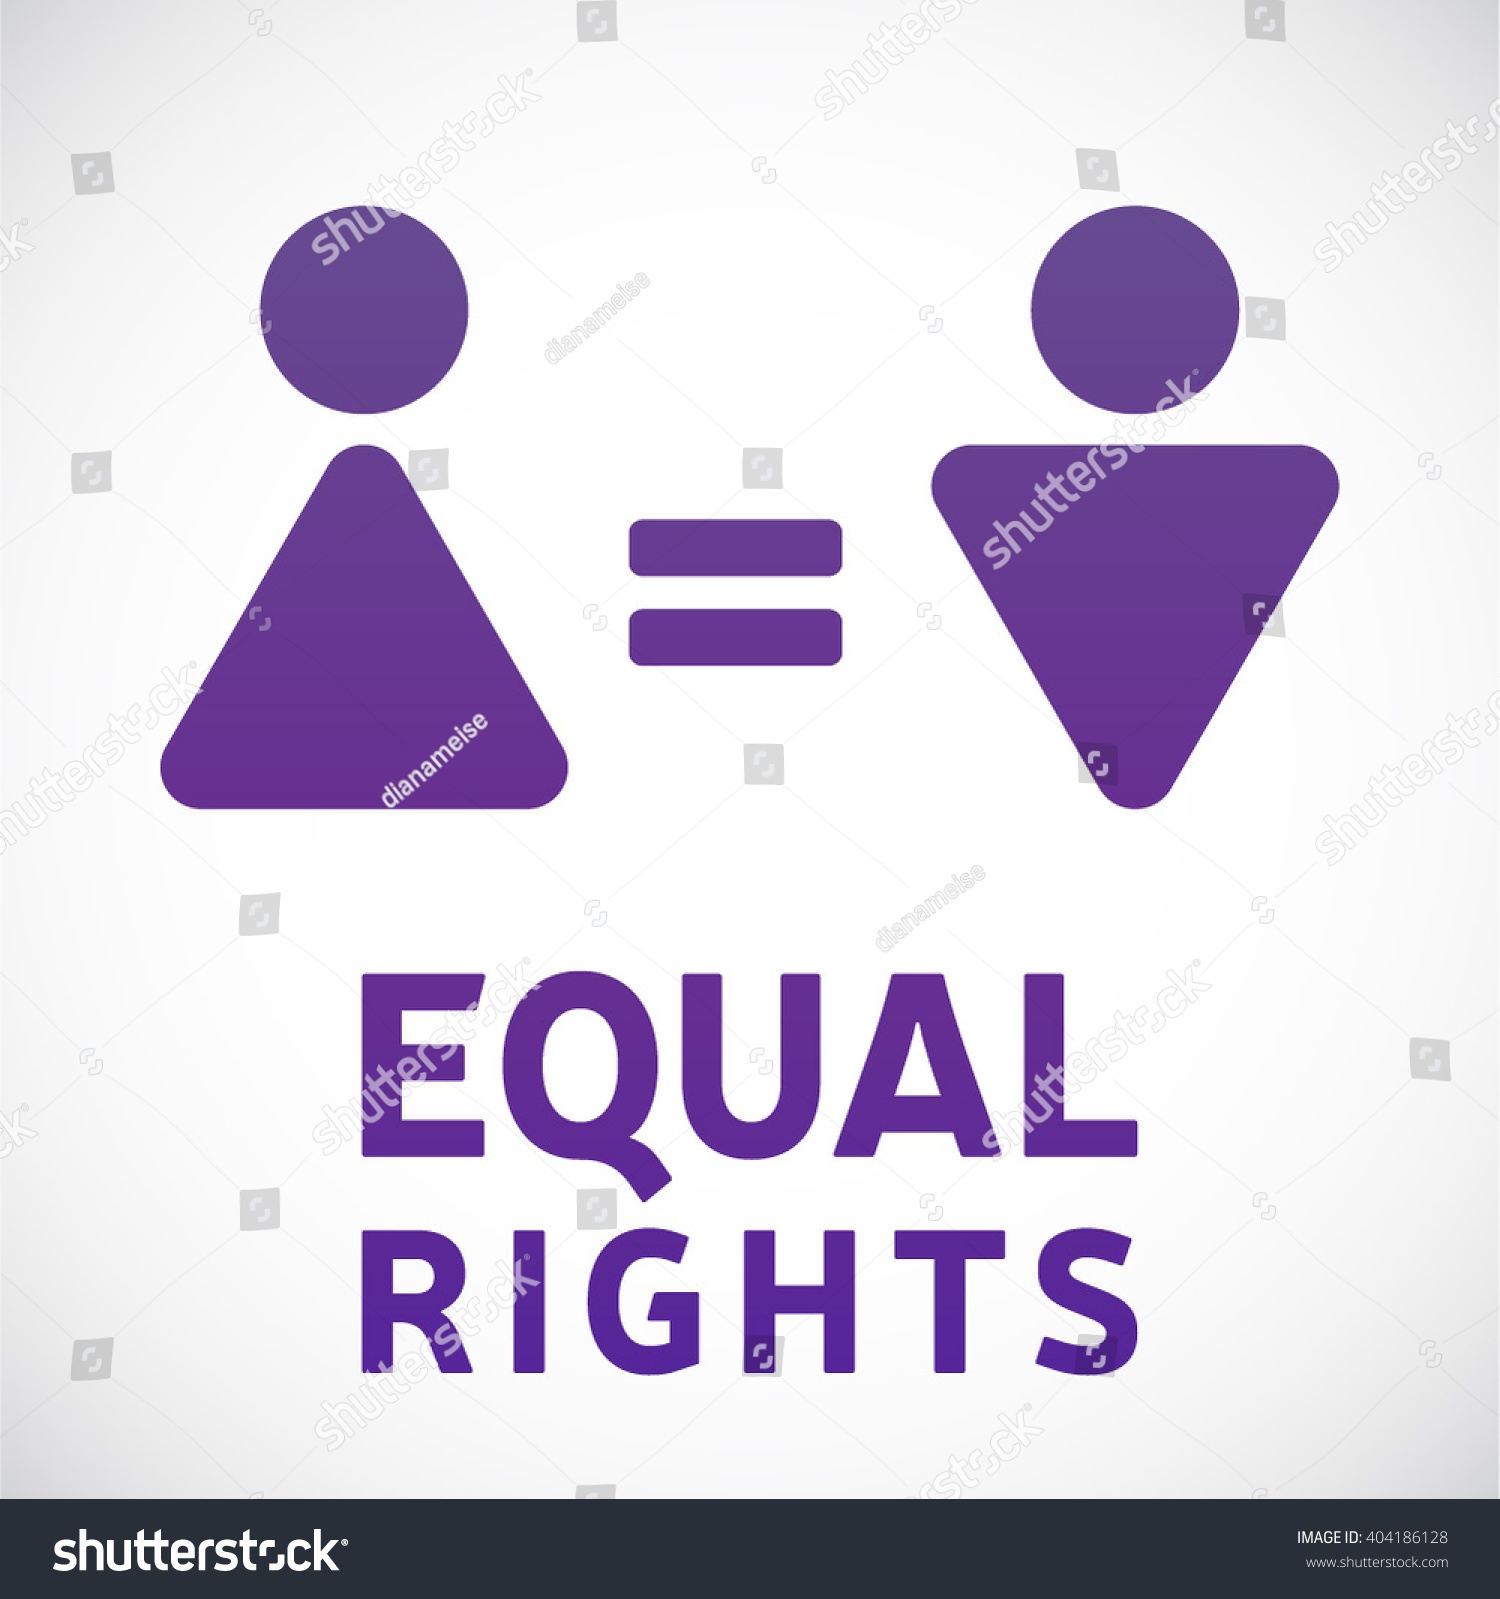 Equal Rights Concept Male Female Gender Stock Photo Photo Vector